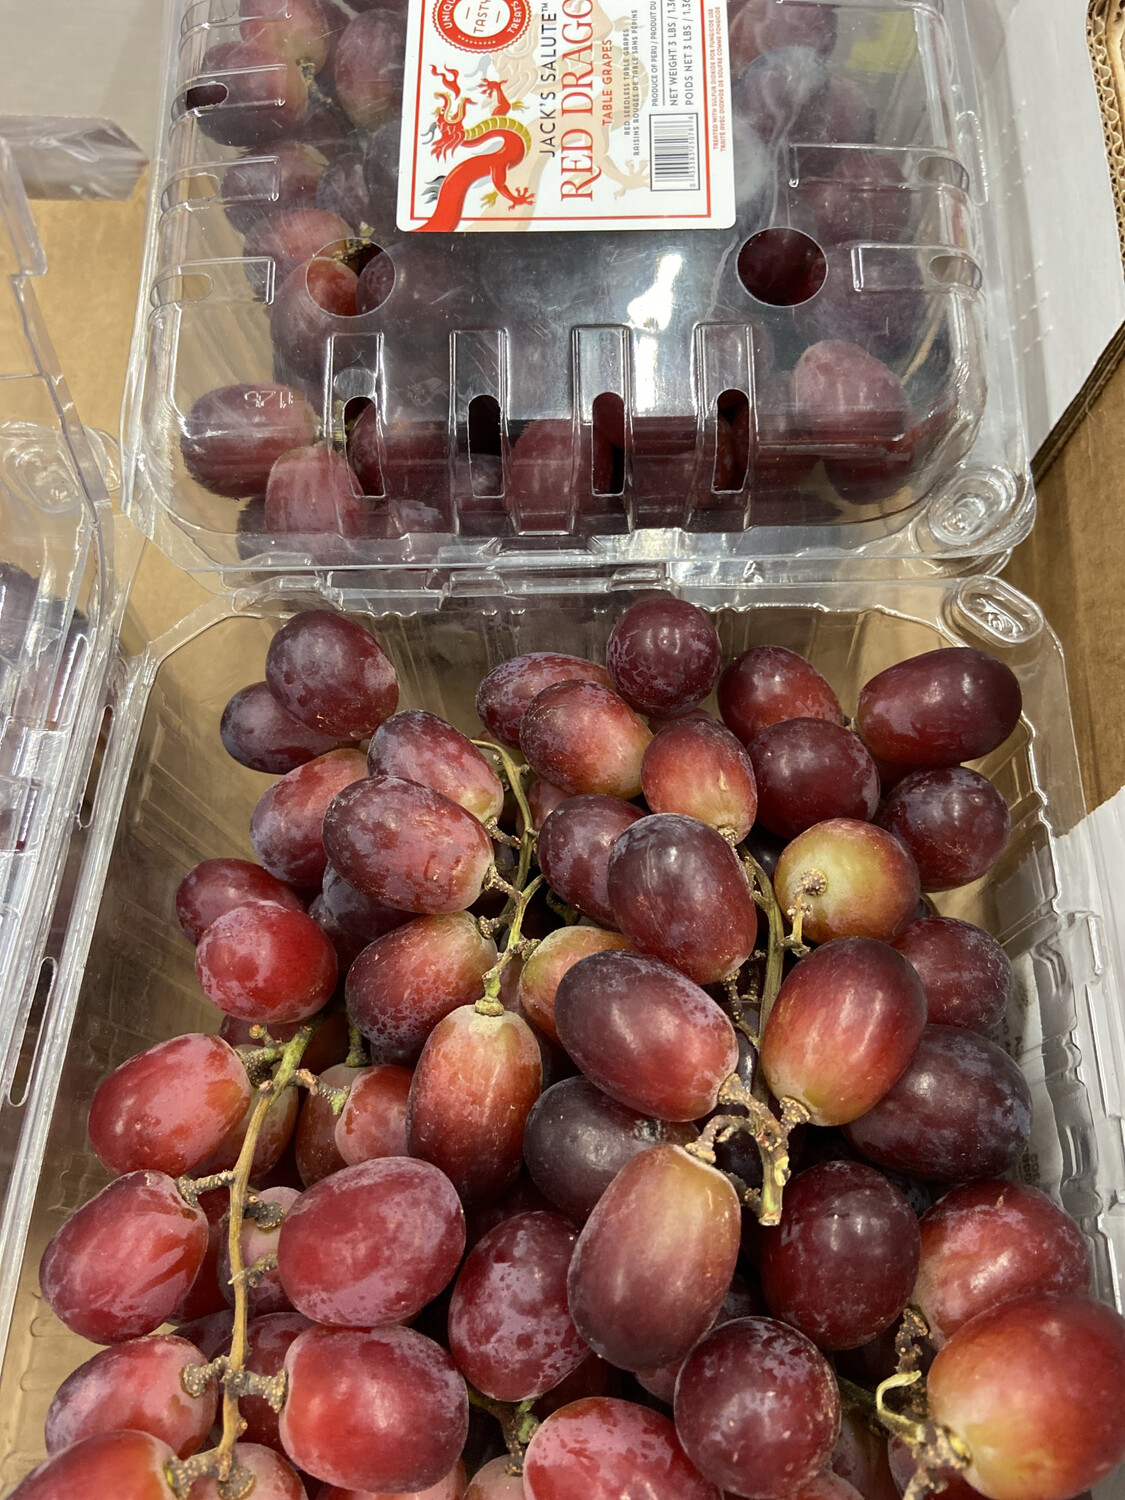 【RSP】Seedless Red Grapes 无籽红葡萄 3lb